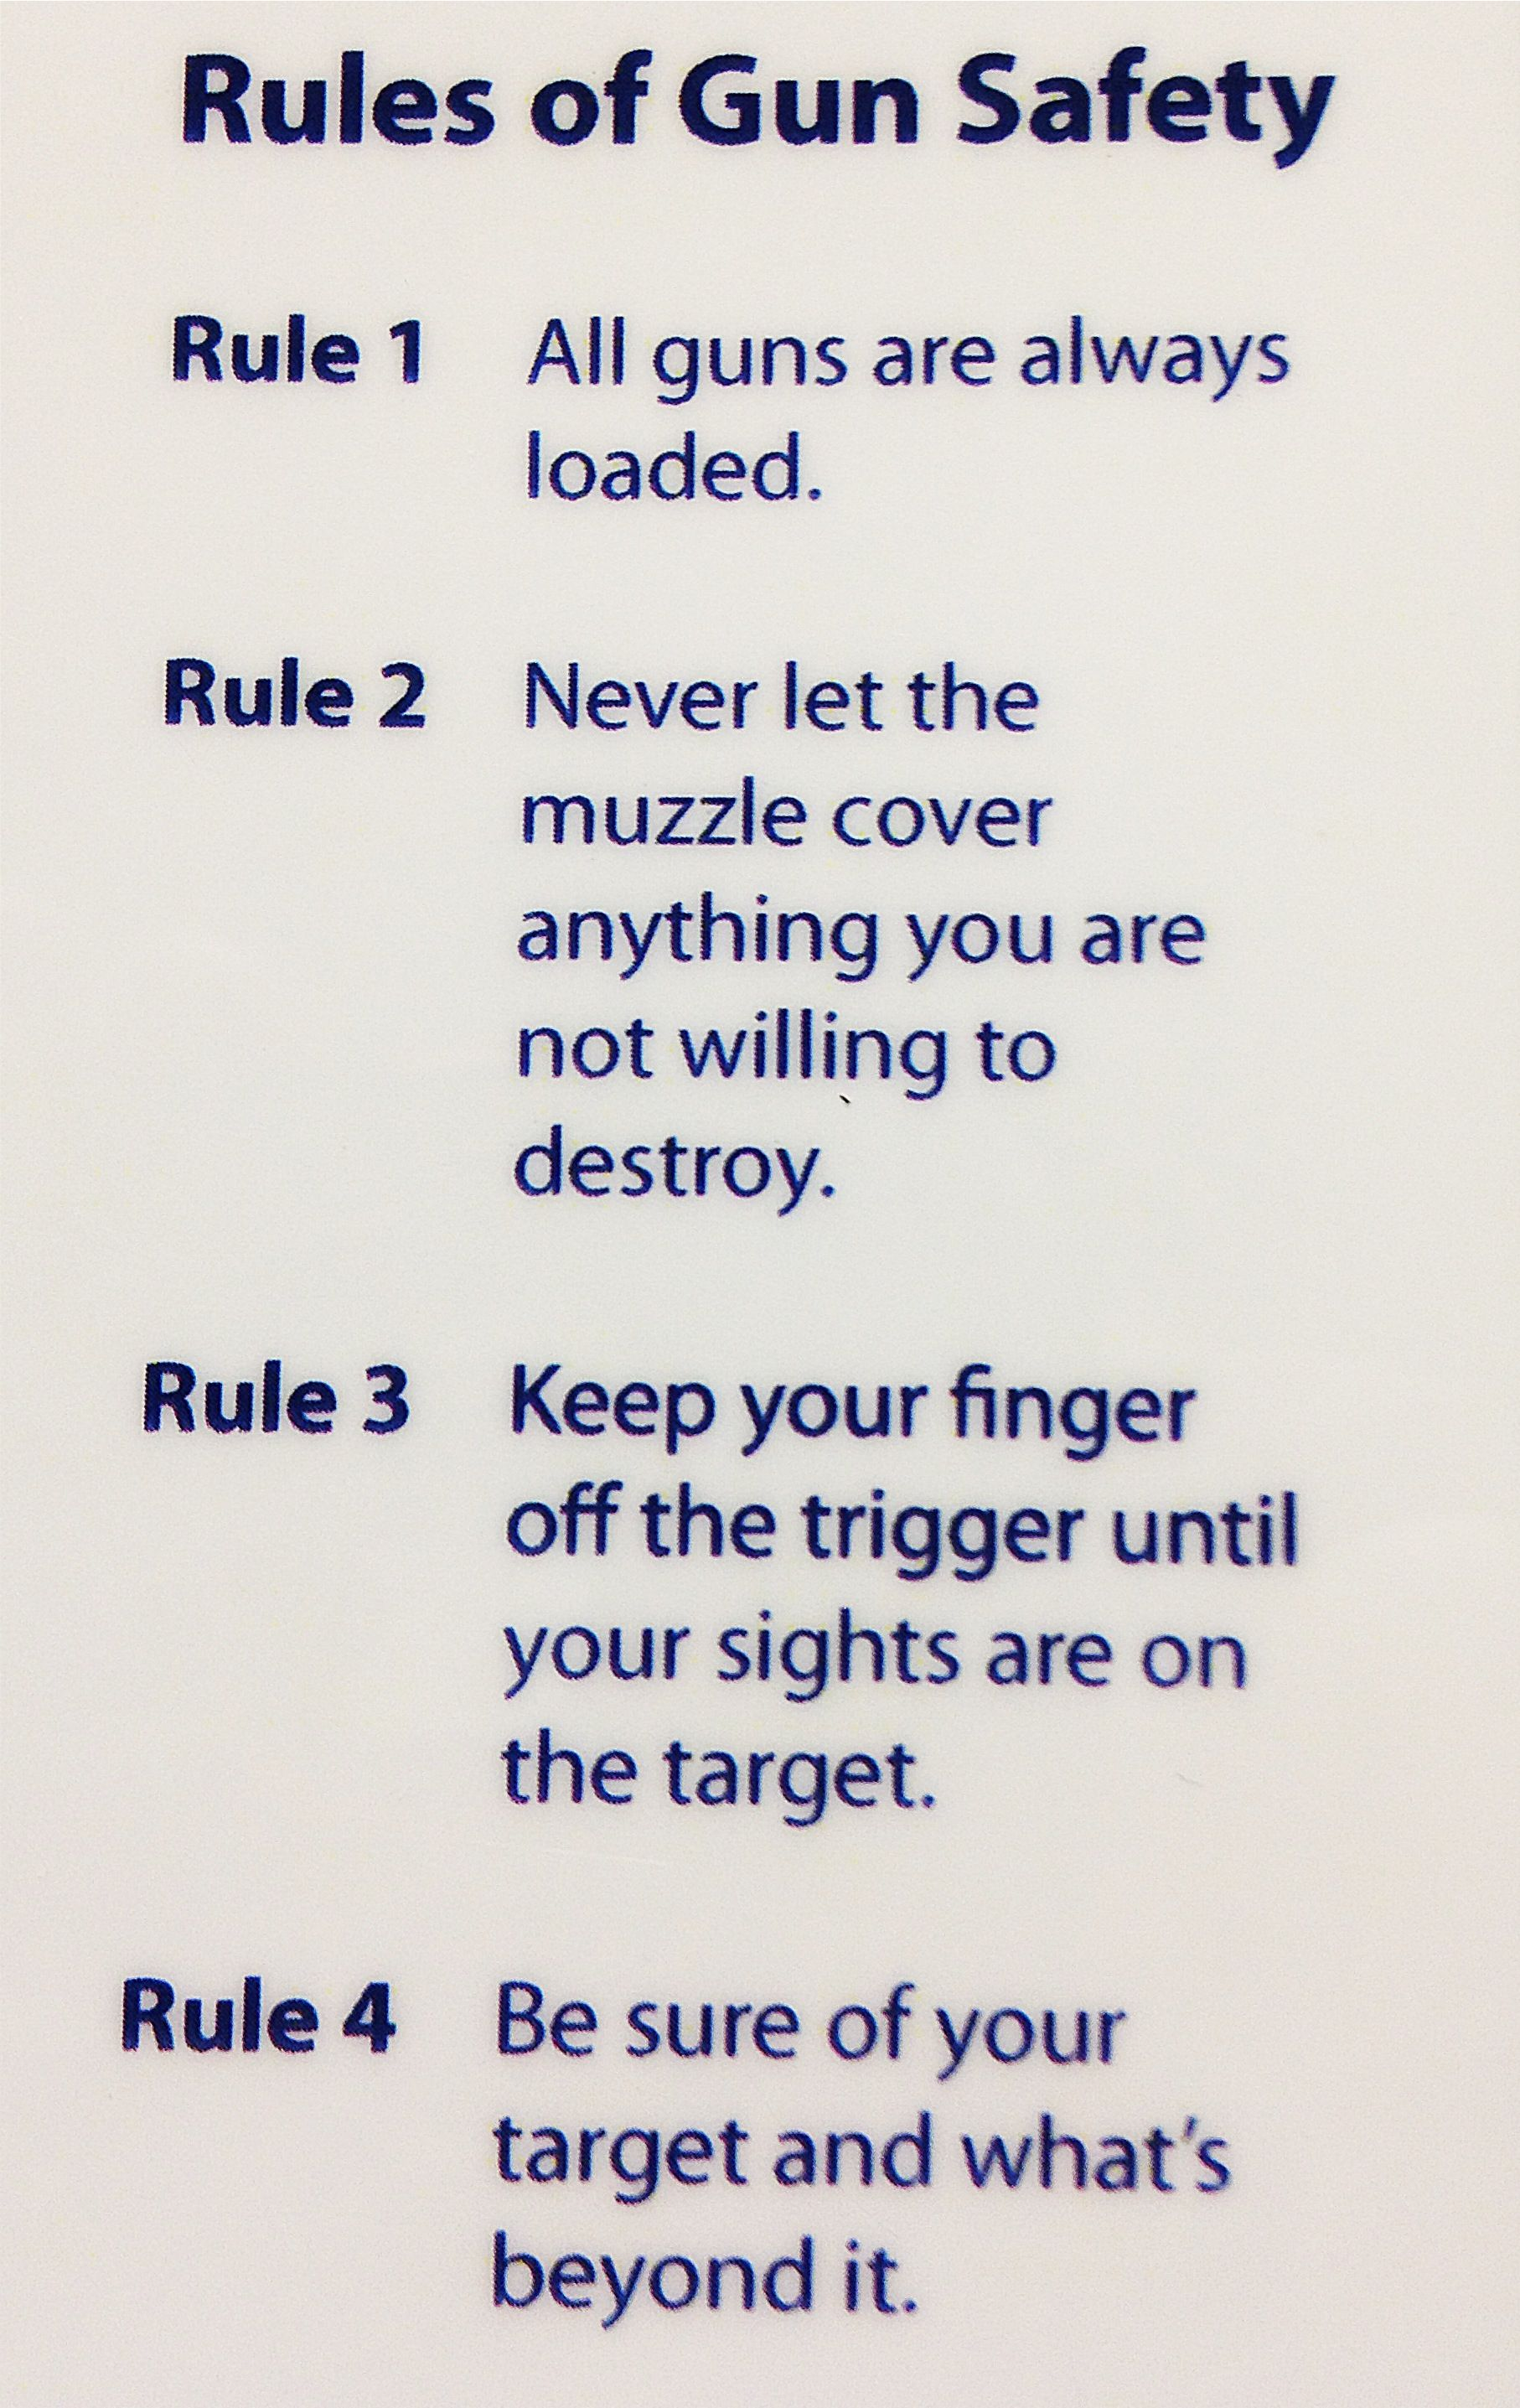 Core Rules of Gun Safety 2nd amendment rights